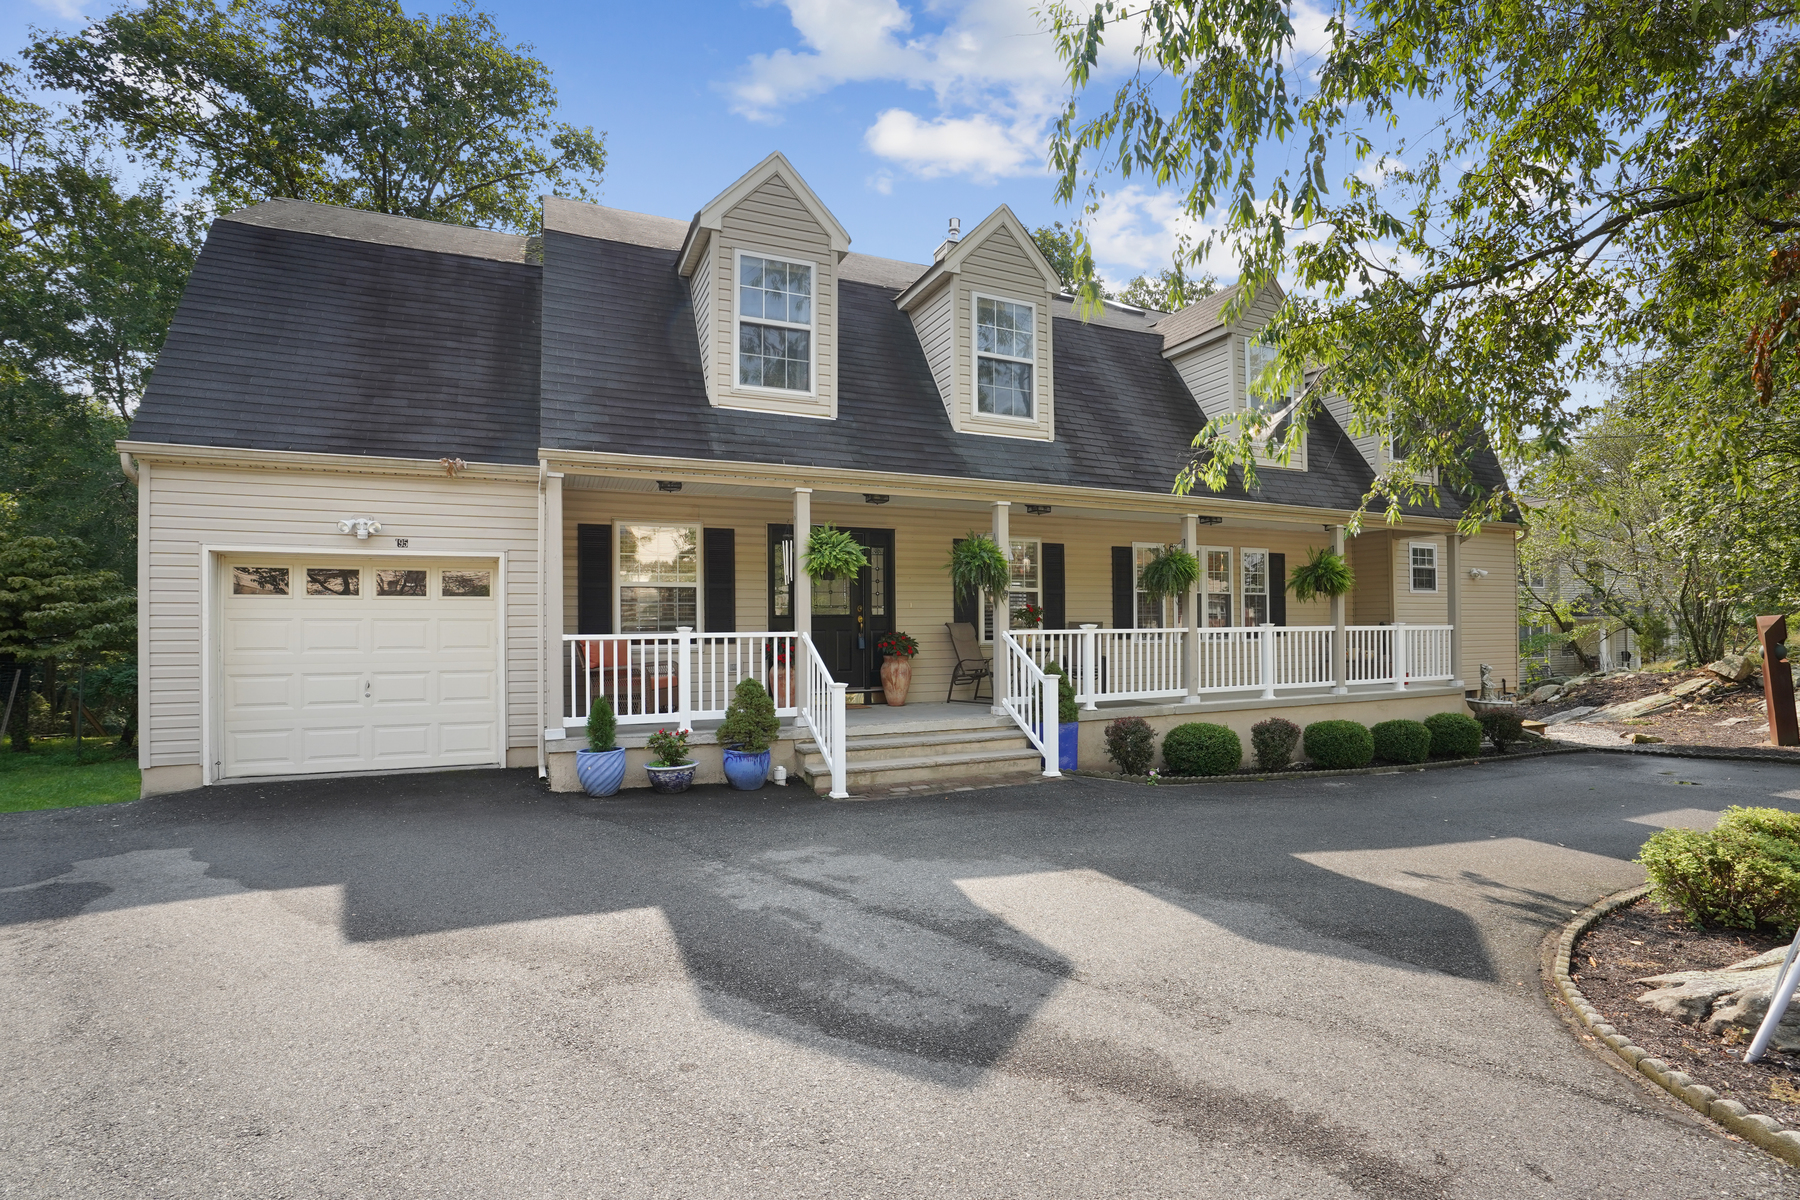 Single Family Homes for Active at Spectacular Custom Home in White Meadow Lake Community 195 W Lake Shore Drive Rockaway, New Jersey 07866 United States